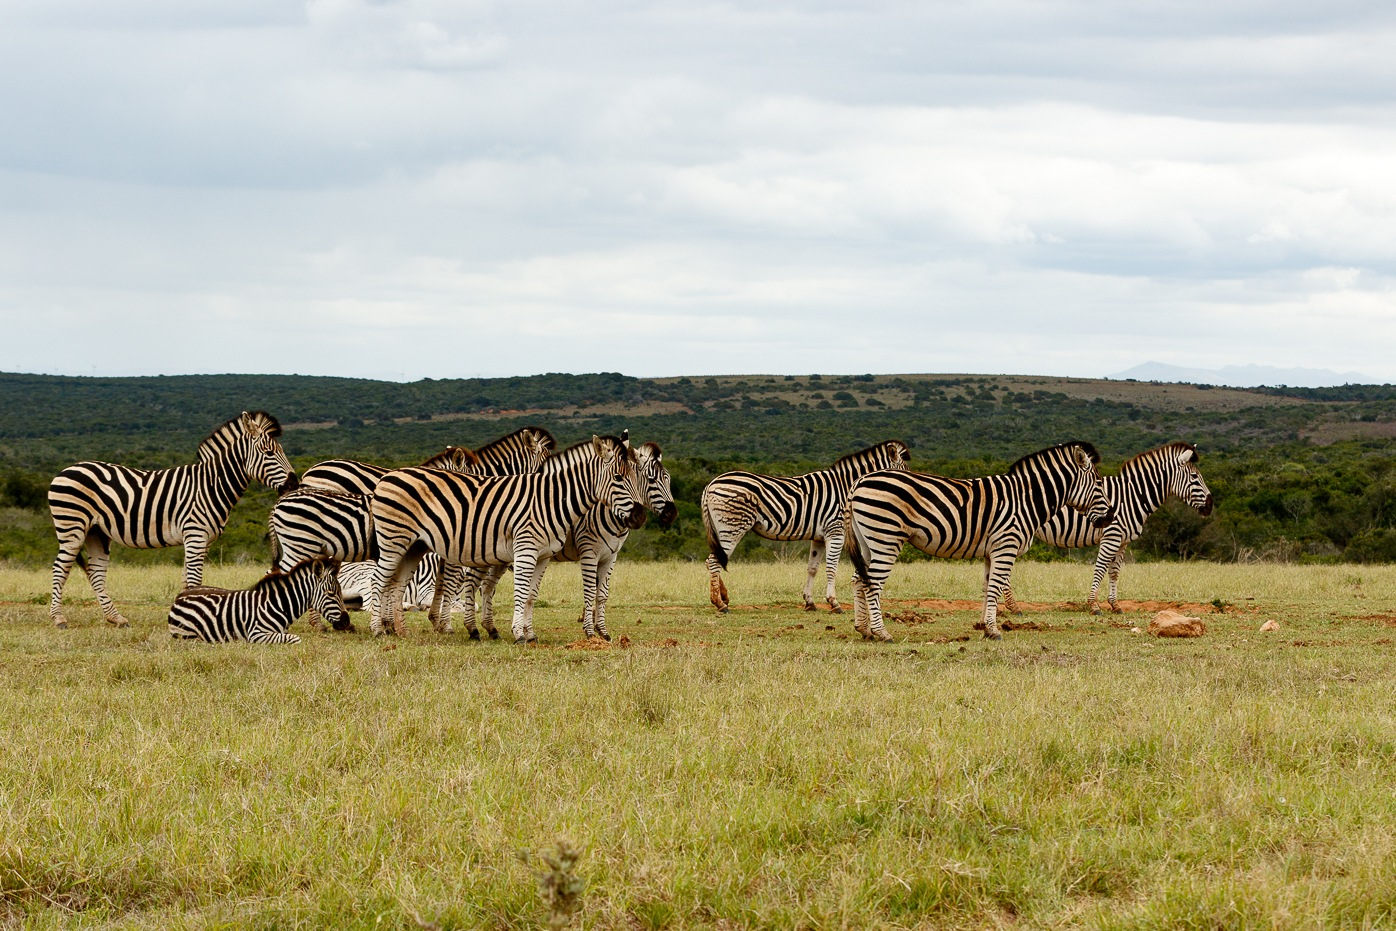 Zebras standing and lining up for some water  by Mark de Scande